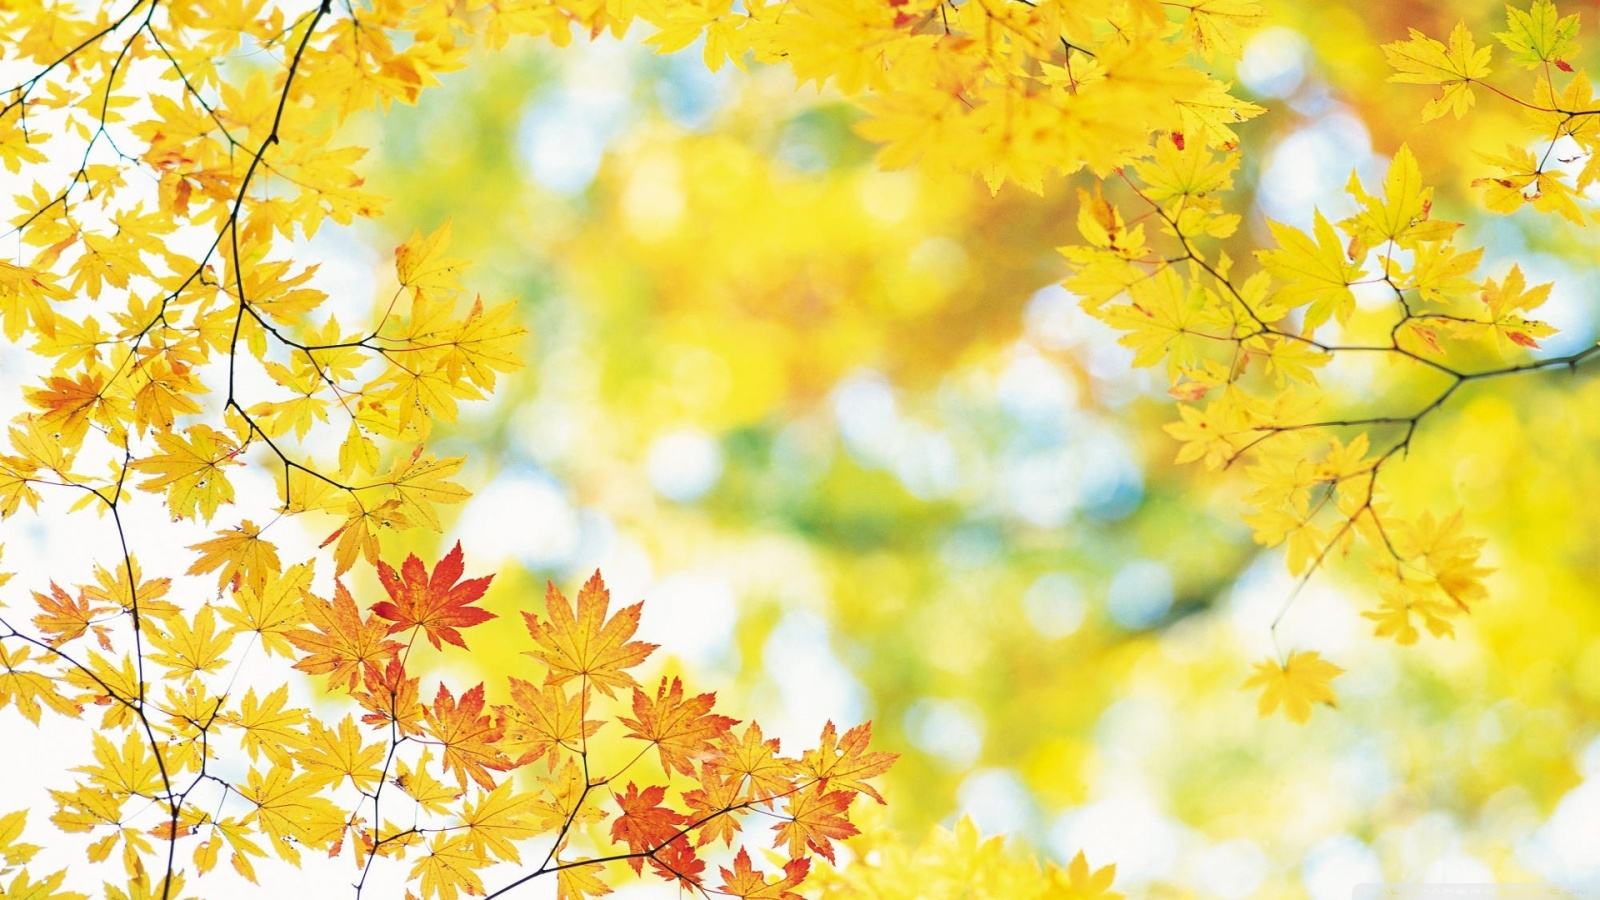 Autumn Leaf wallpapers (16 Wallpapers) - HD Wallpapers